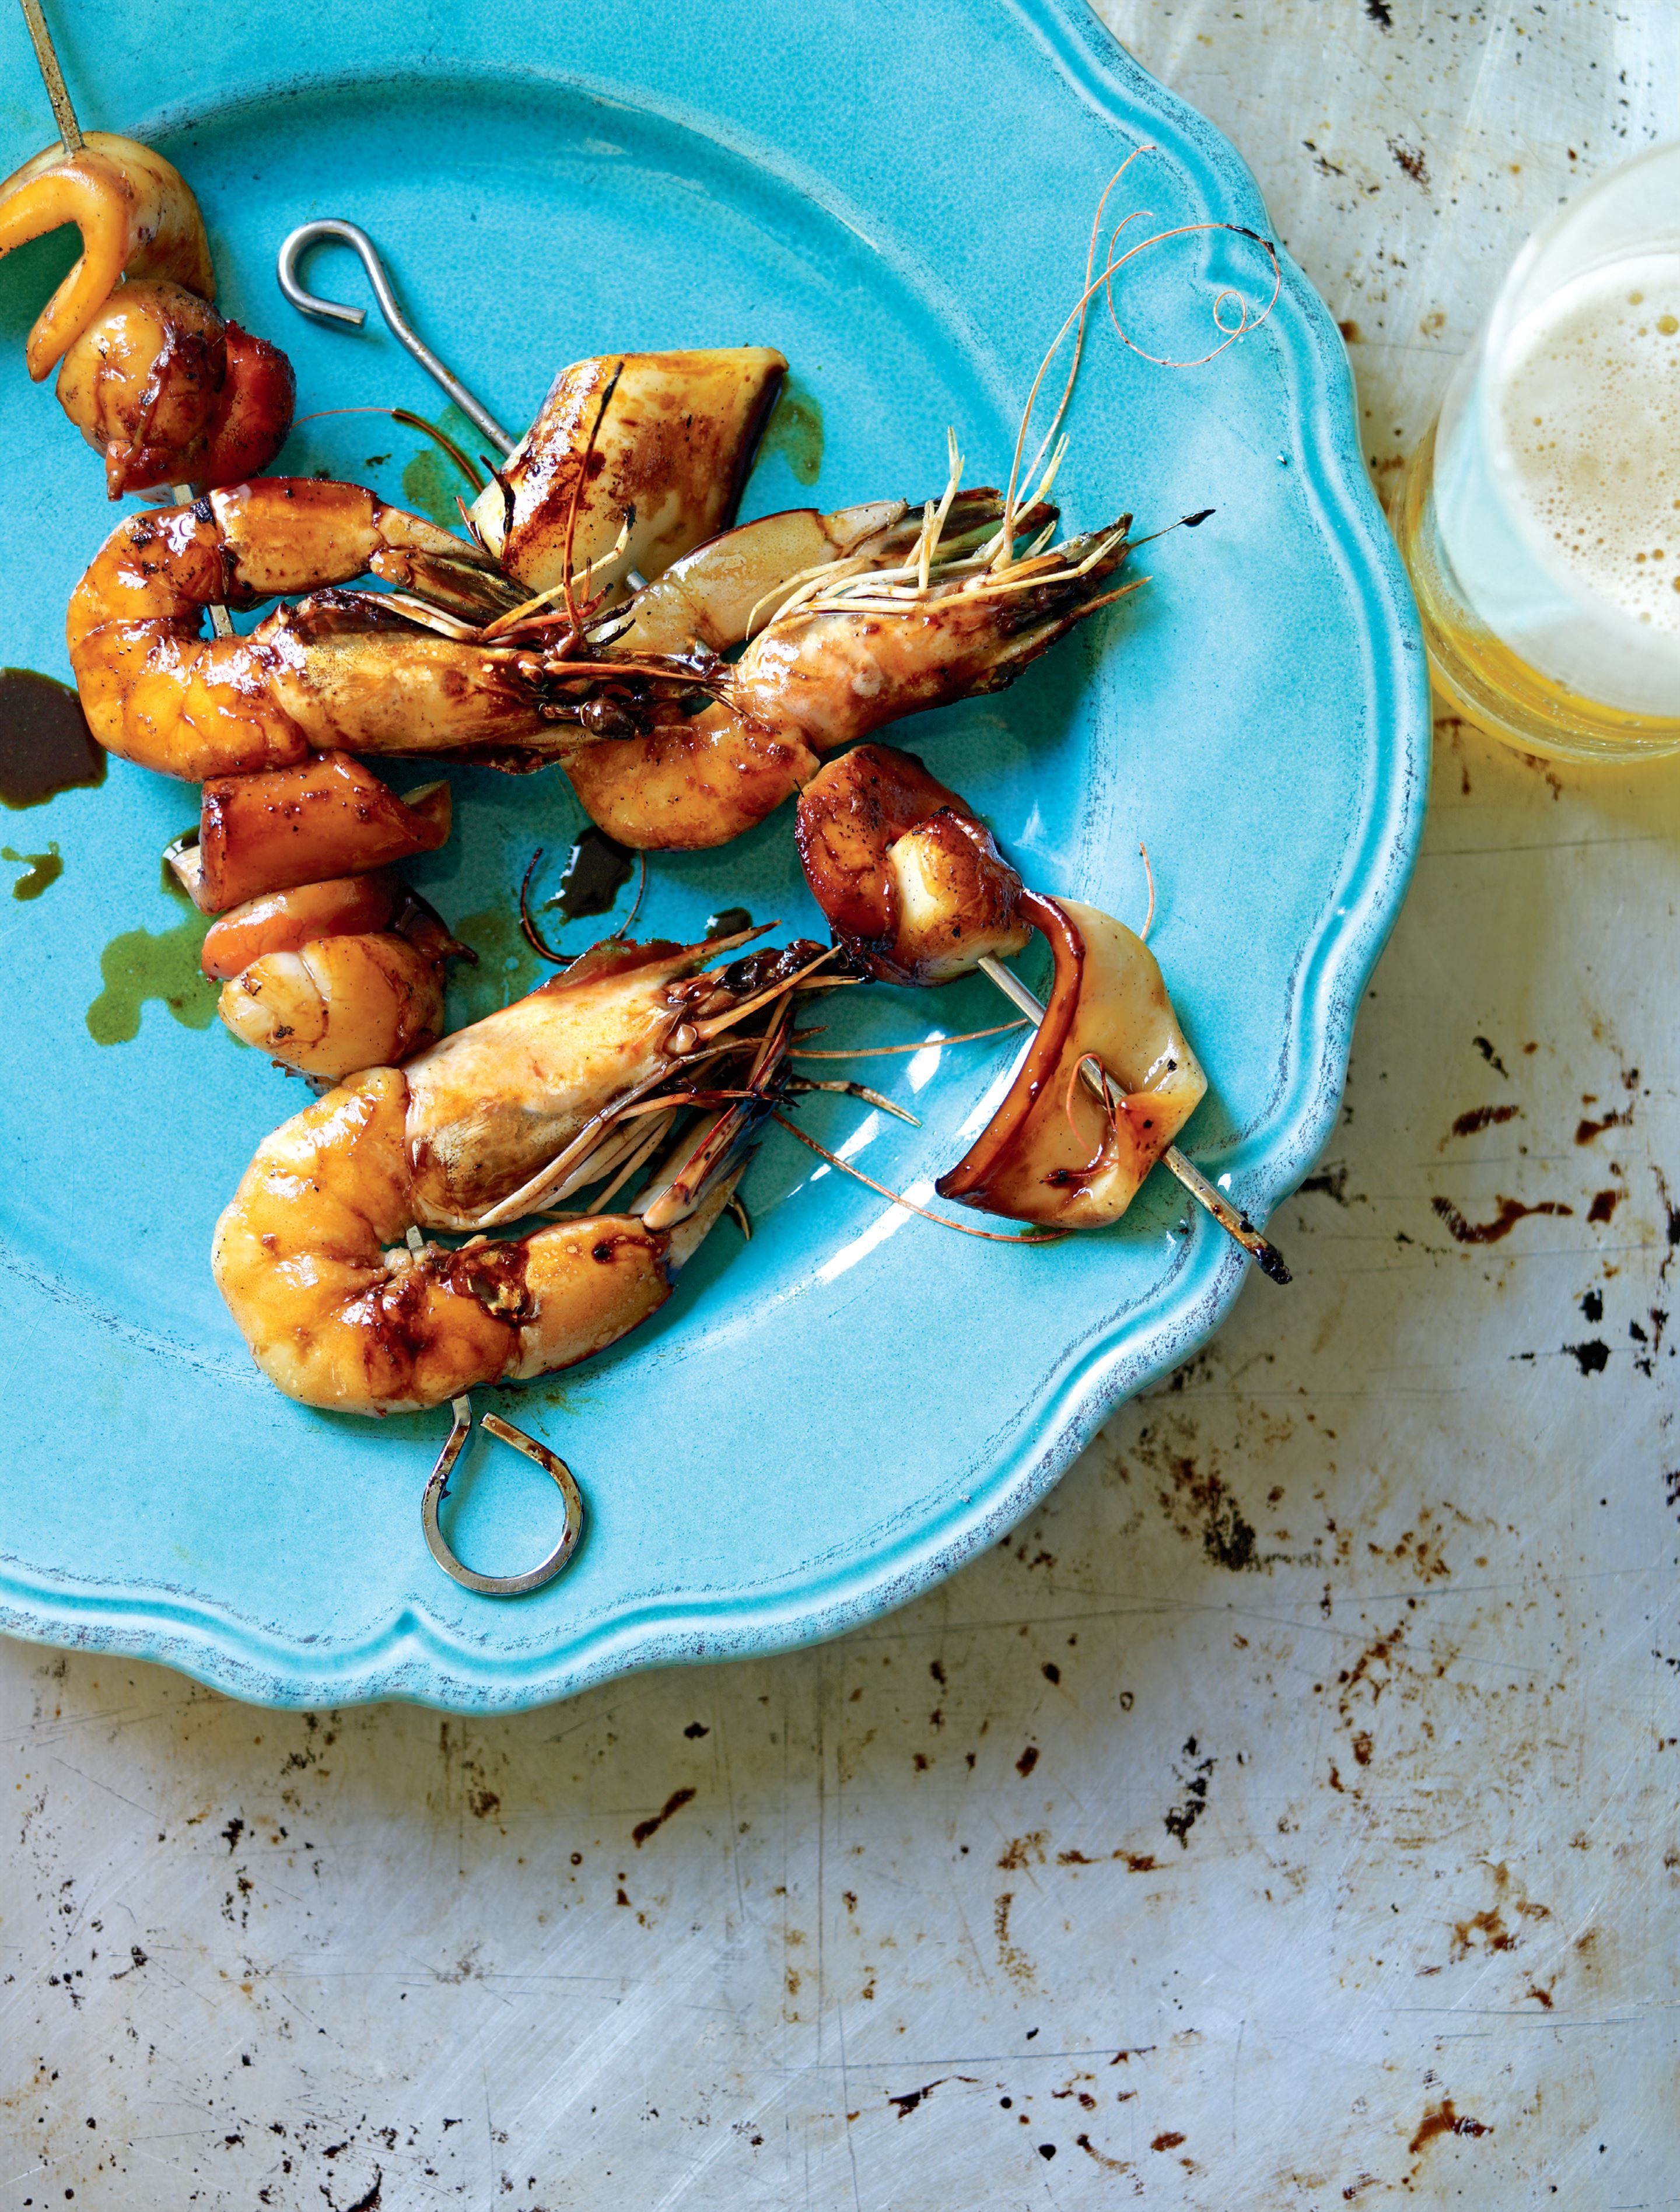 Barbecued sweet-glazed seafood